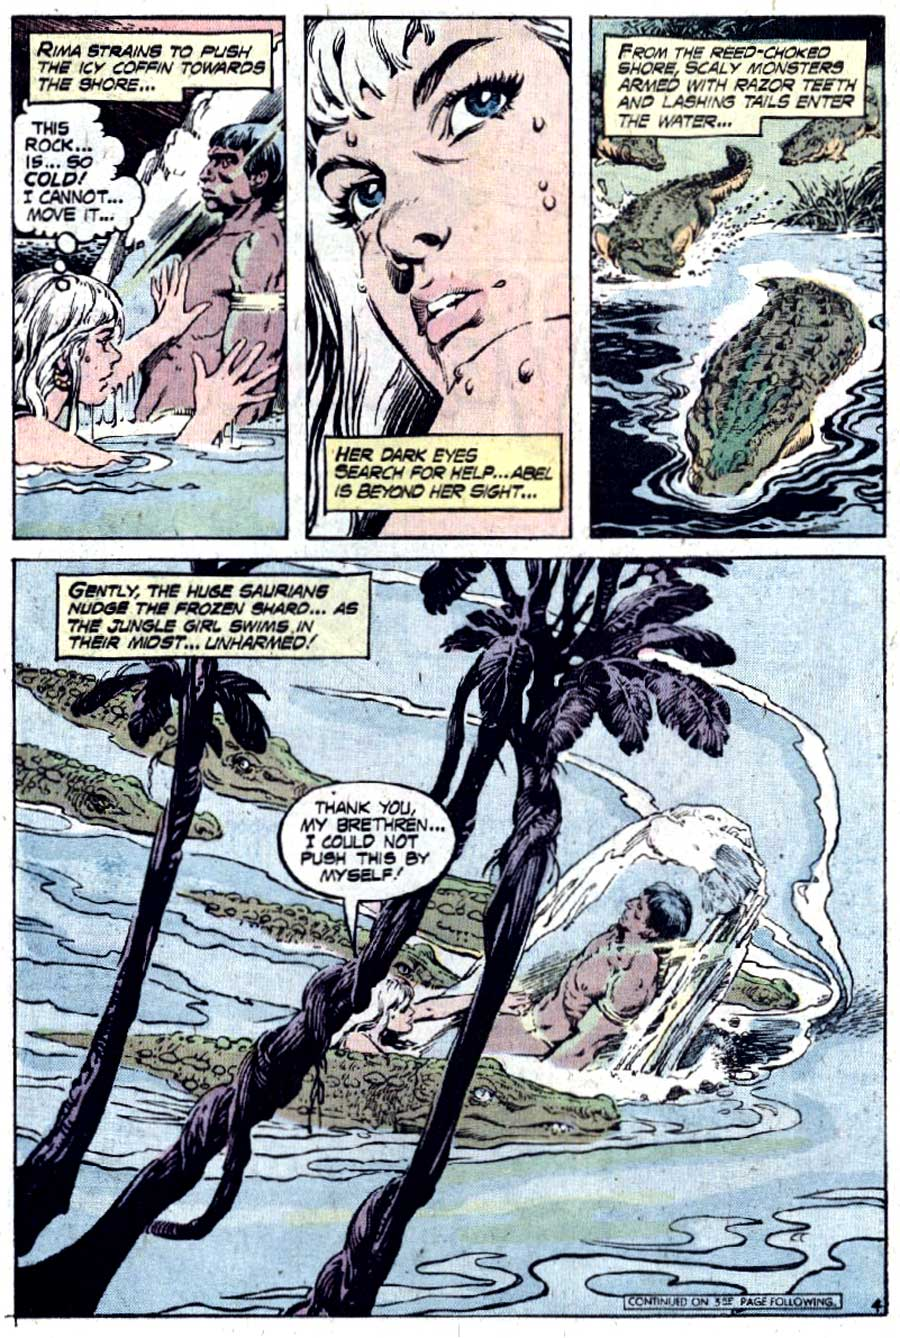 Rima the Jungle Girl v1 #5 dc bronze age comic book page art by Nestor Redondo